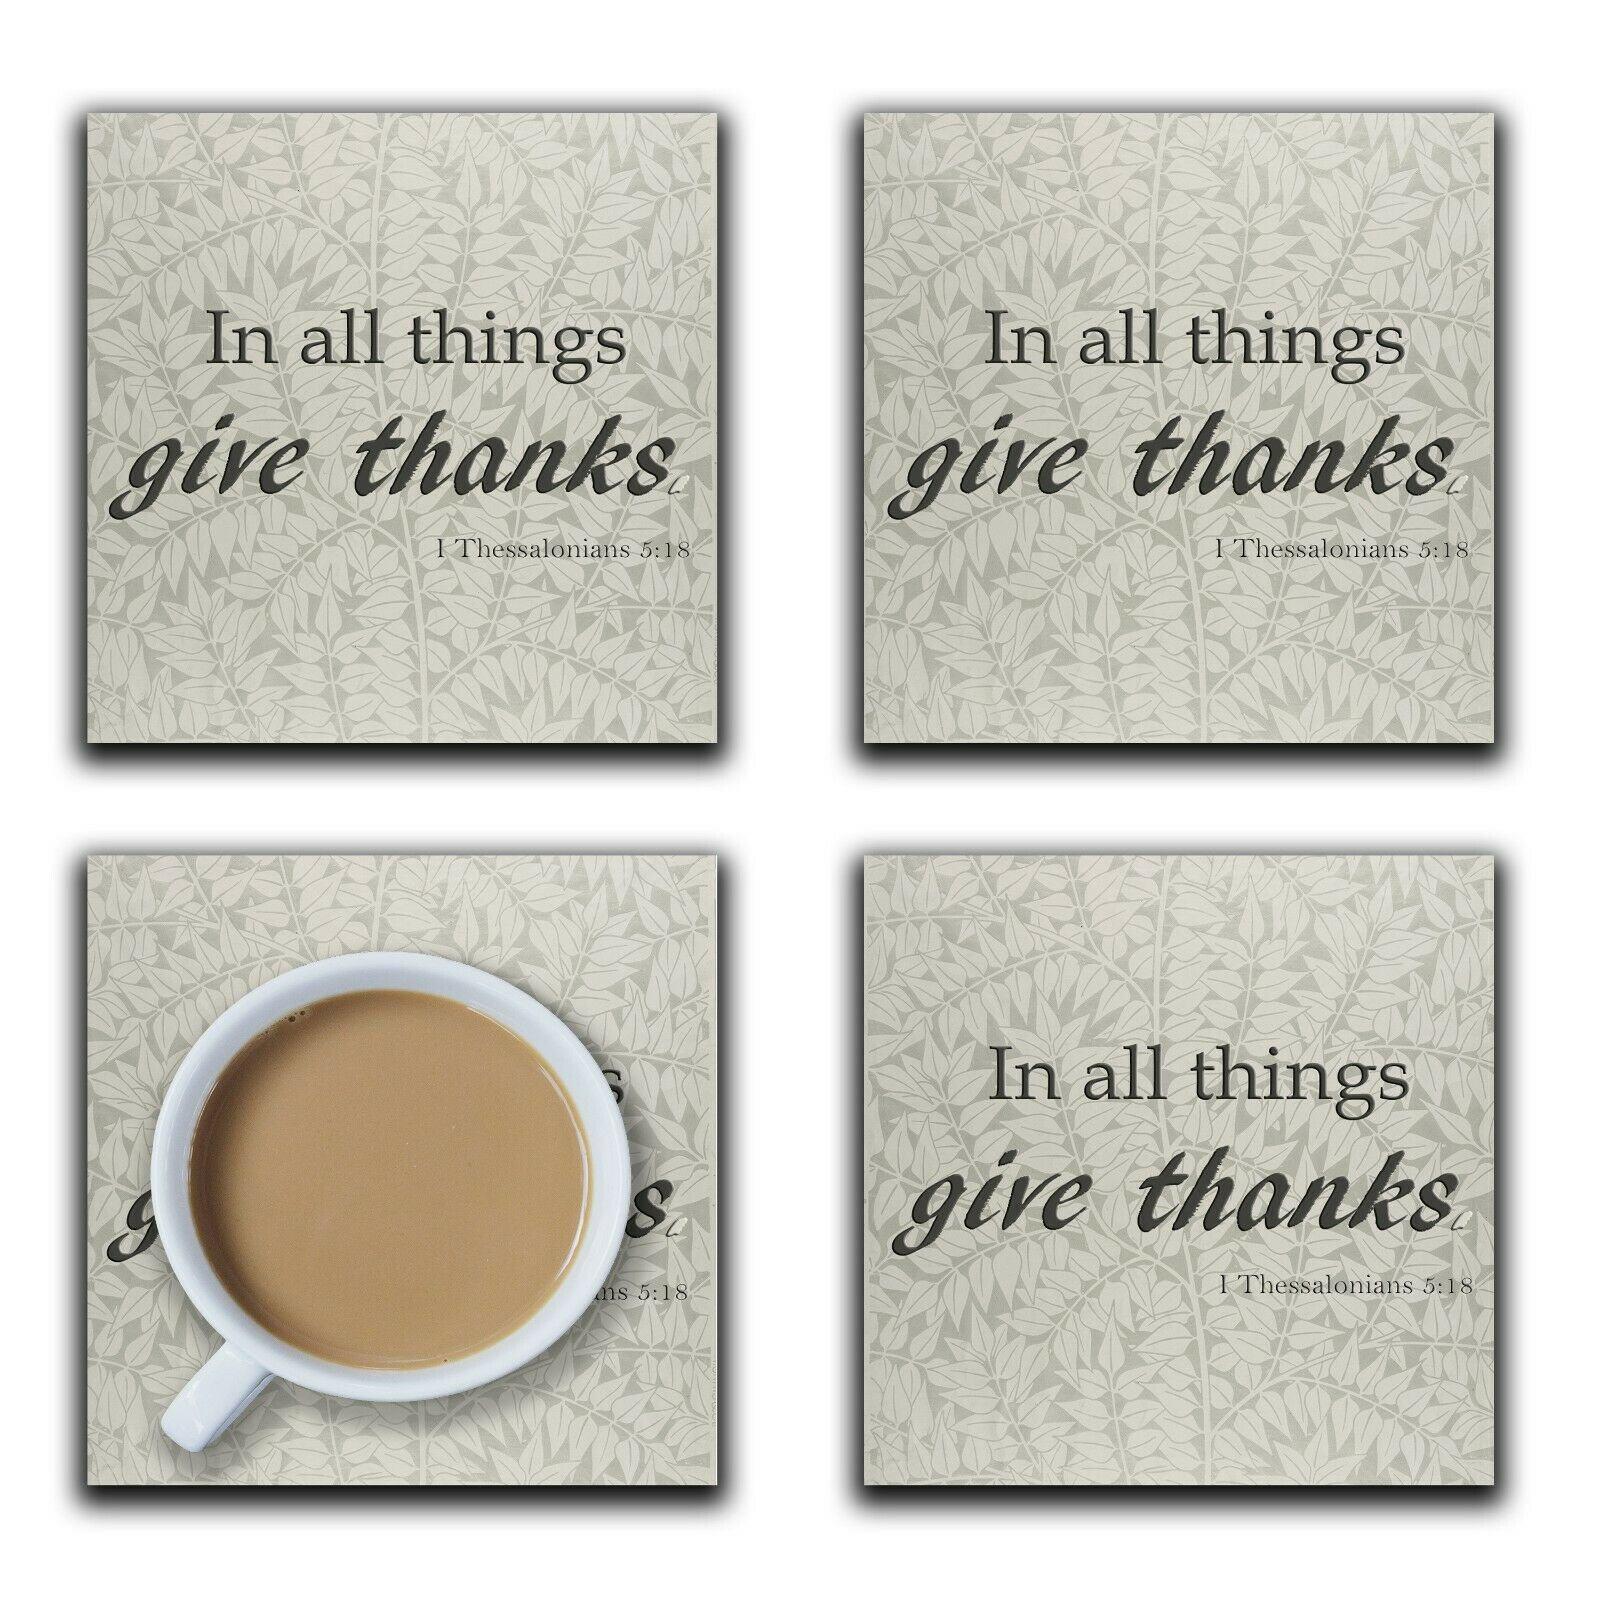 Embossi Printed In All Things Give Thanks - Leaves, wood or ceramic tile, set of 4